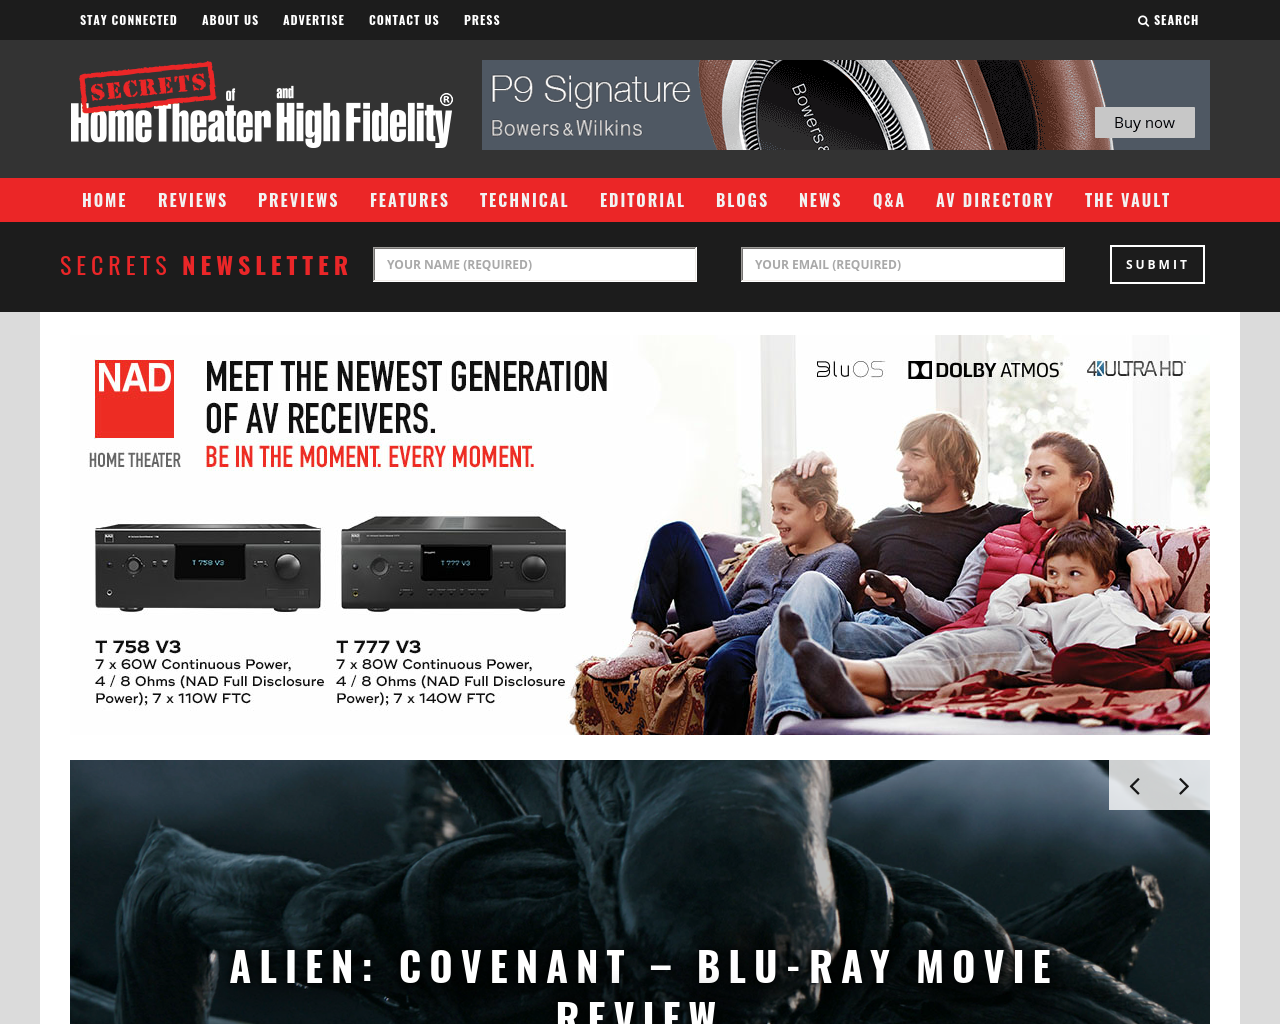 Secrets-of-Home-Theater-and-High-Fidelity-Advertising-Reviews-Pricing